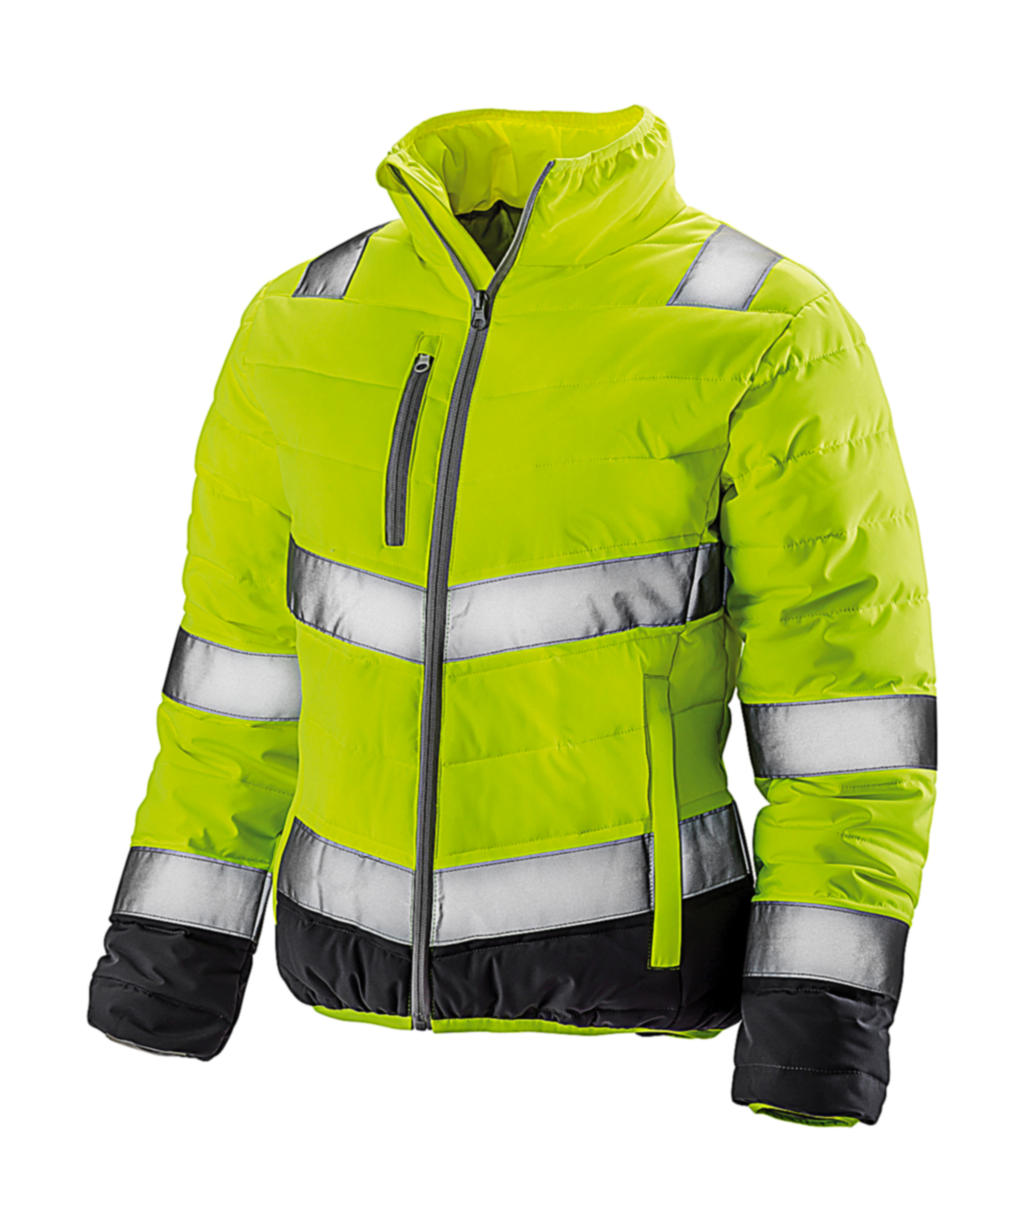 Women's Soft  Safety Jacket